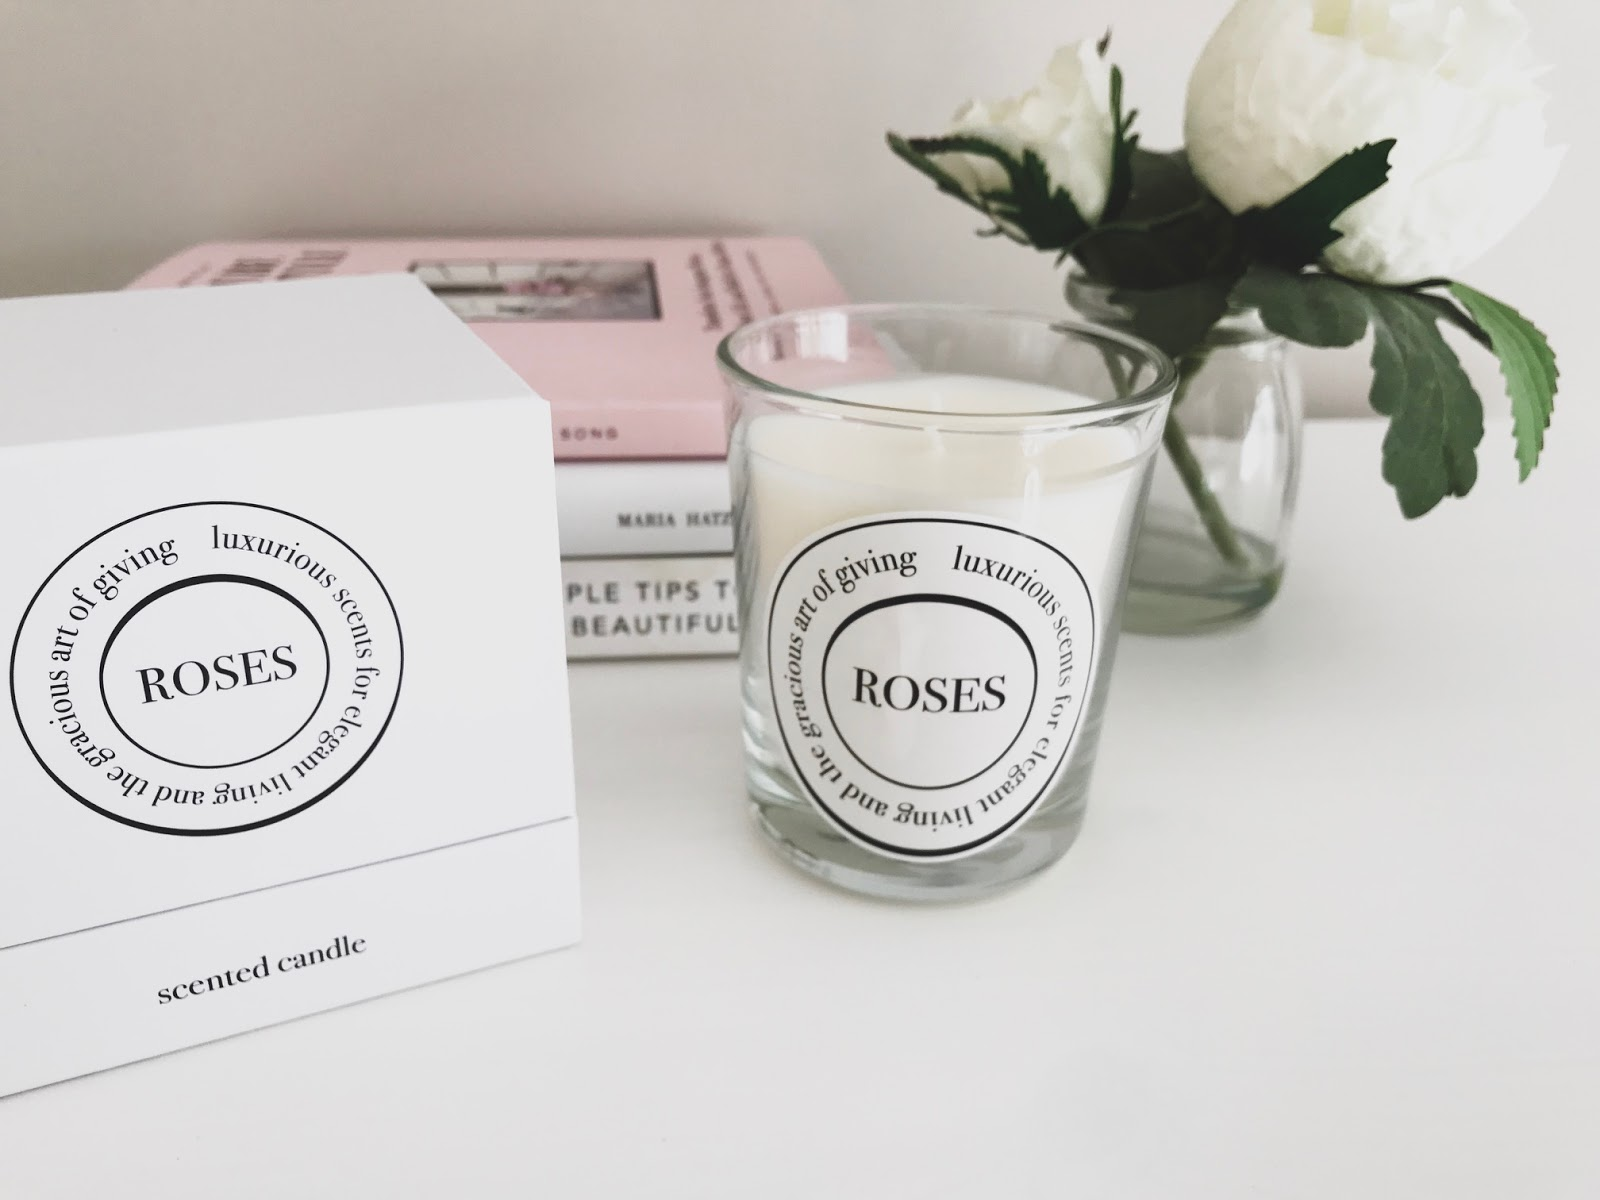 Diptyque Roses Candle dupe